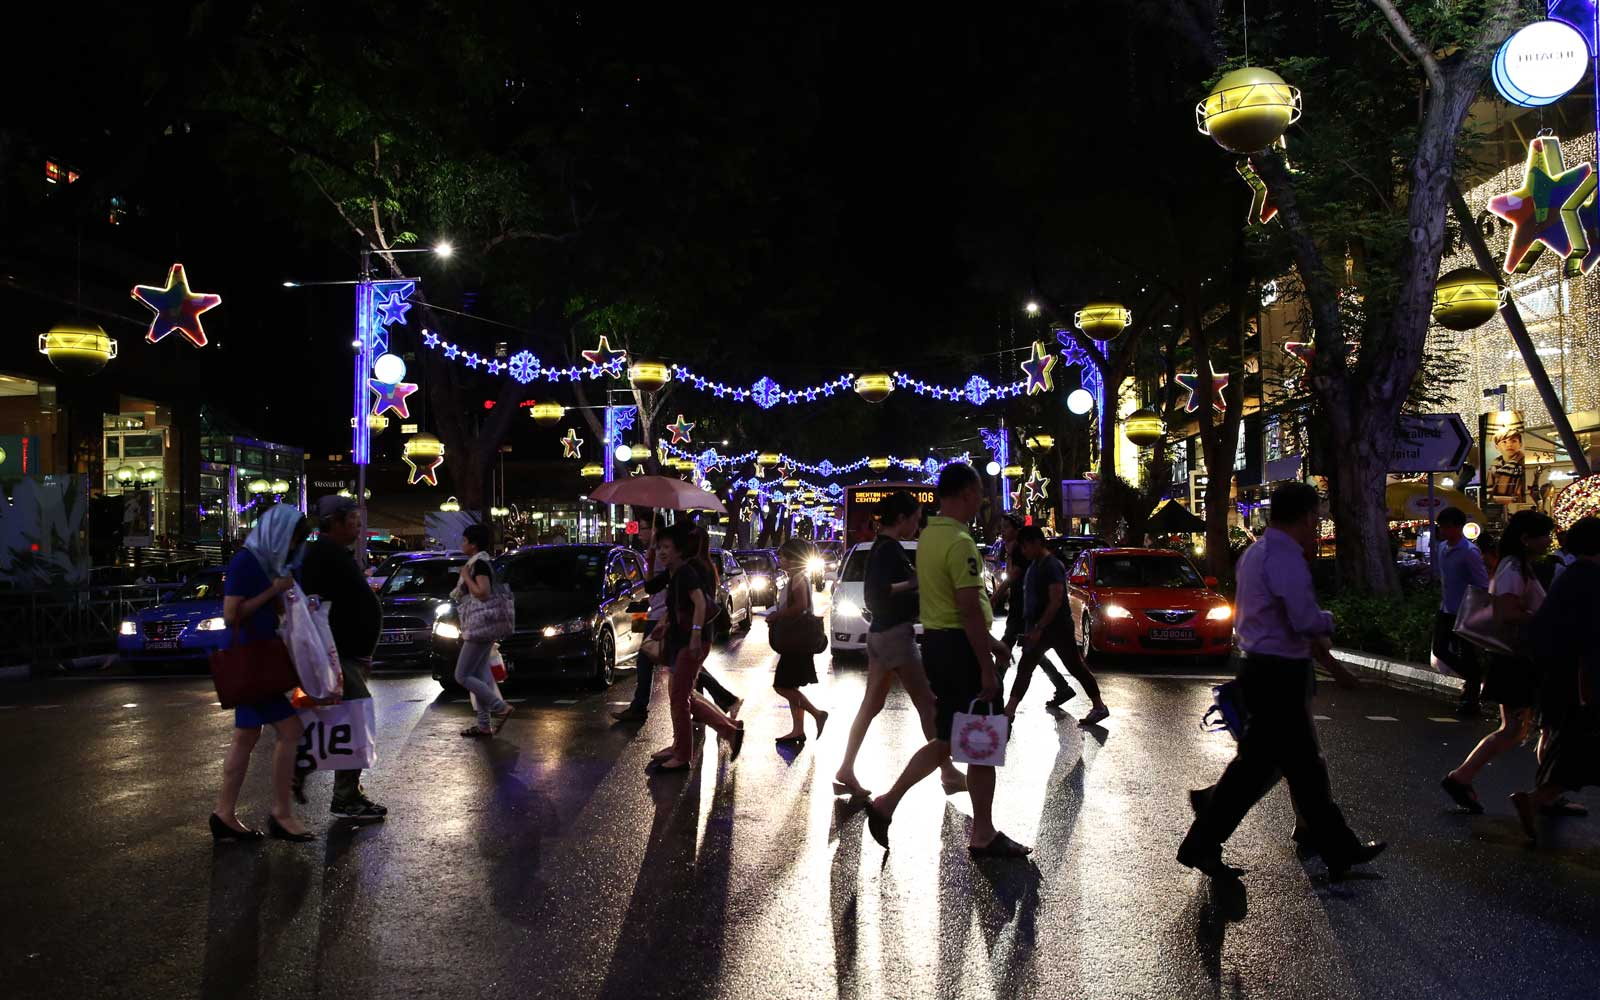 Disney Will Turn This Singapore Street Into a Winter Wonderland for the Holidays